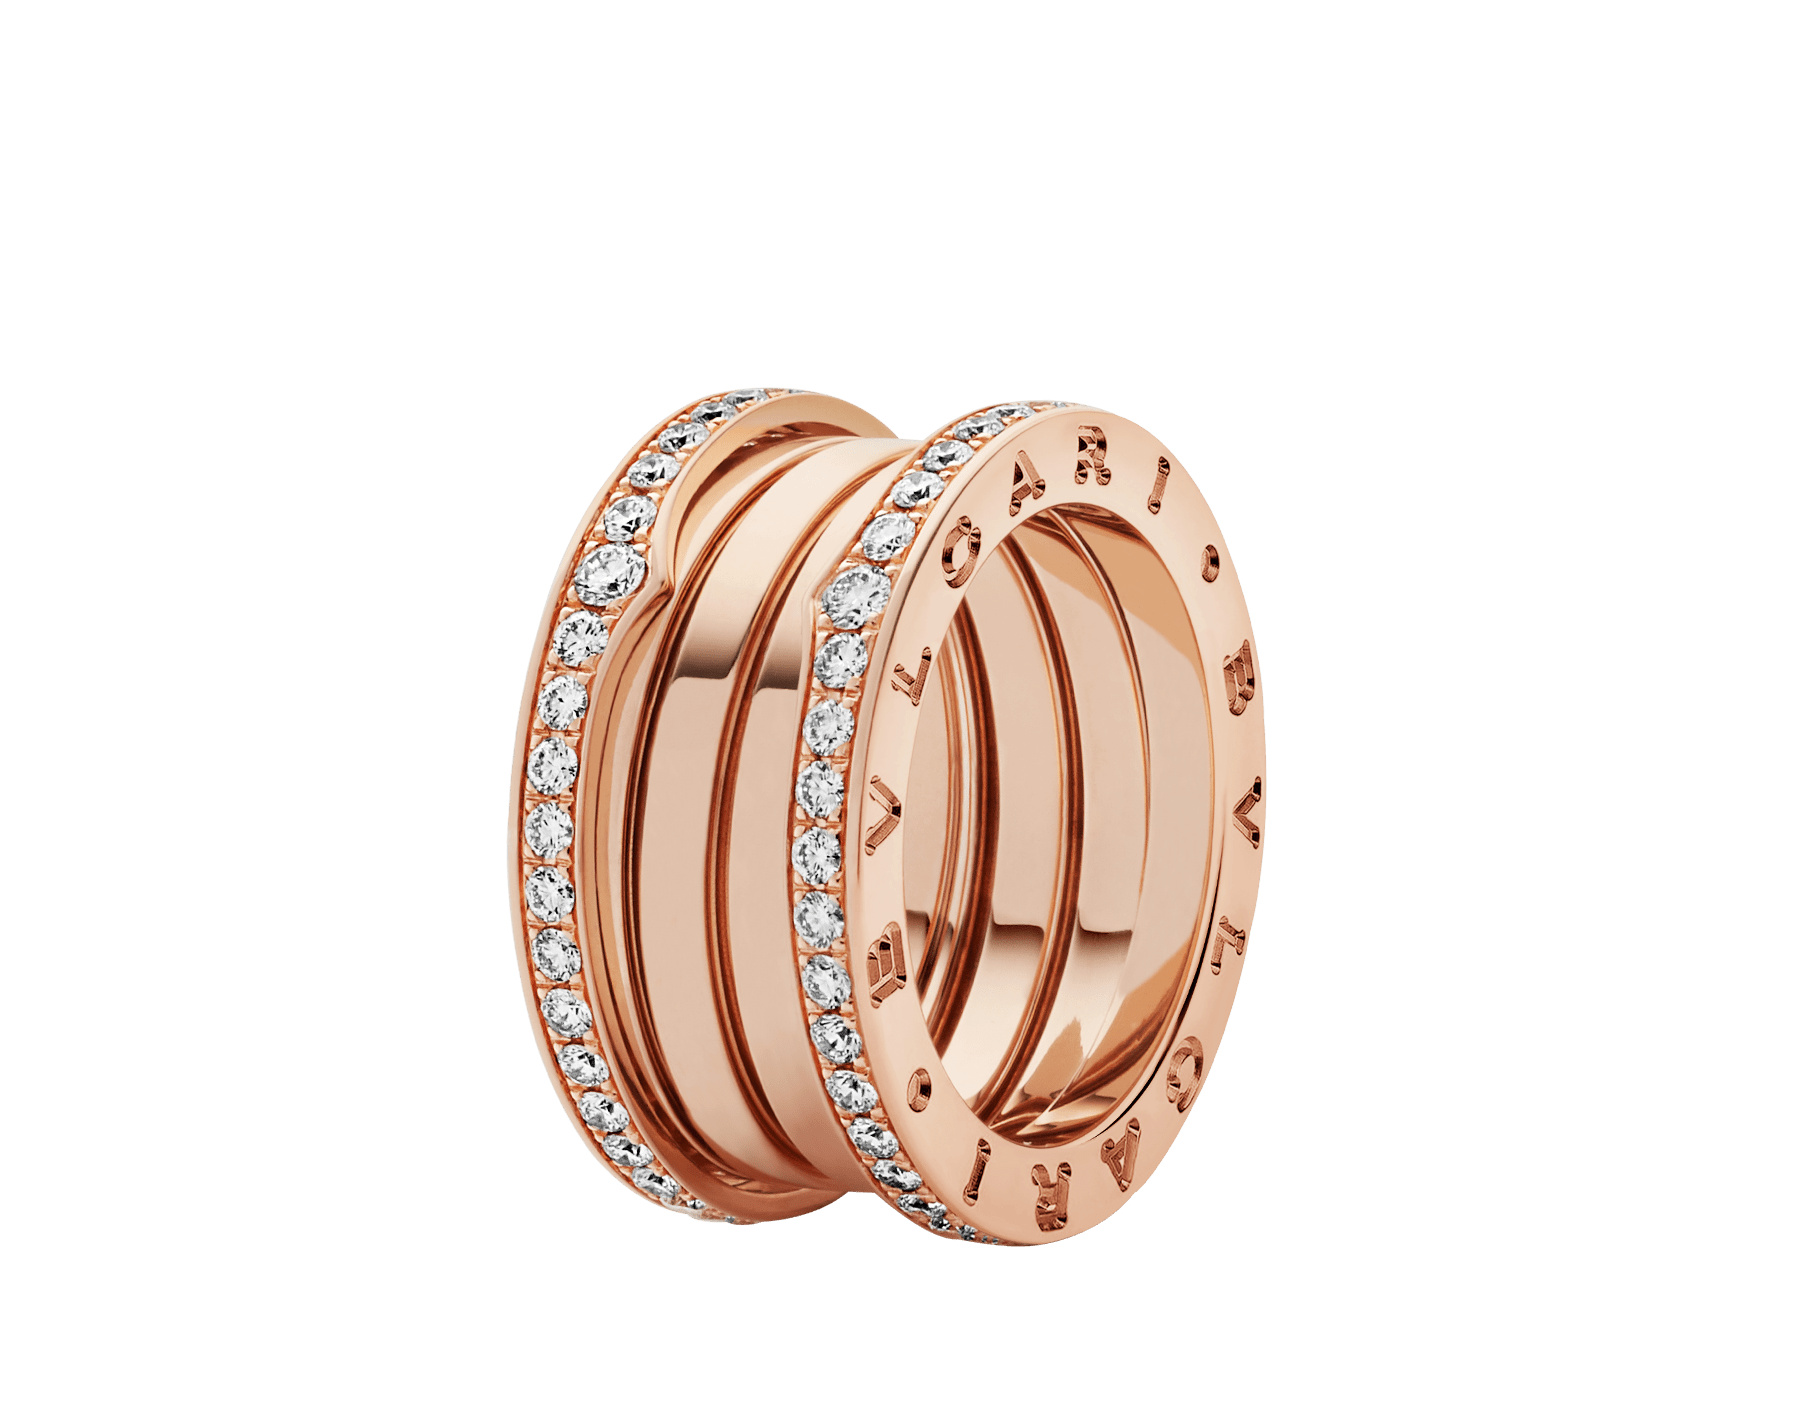 B.zero1 four-band ring in 18 kt rose gold set with pavé diamonds on the edges. B-zero1-4-bands-AN856293 image 1